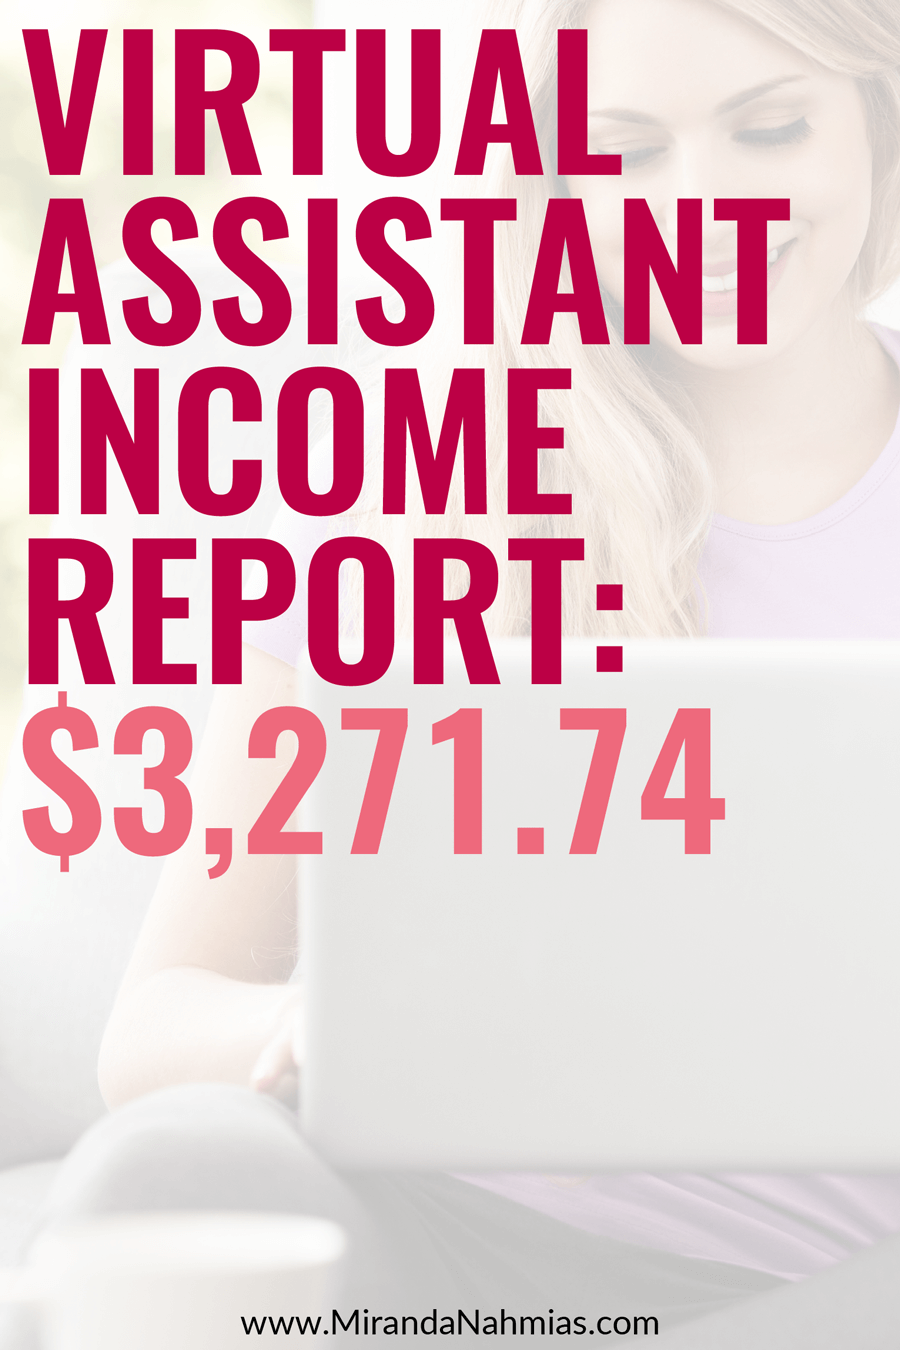 Check out my virtual assistant income report from November 2016! I managed to pull in a bunch of new clients and scored over $3,000 // Miranda Nahmias